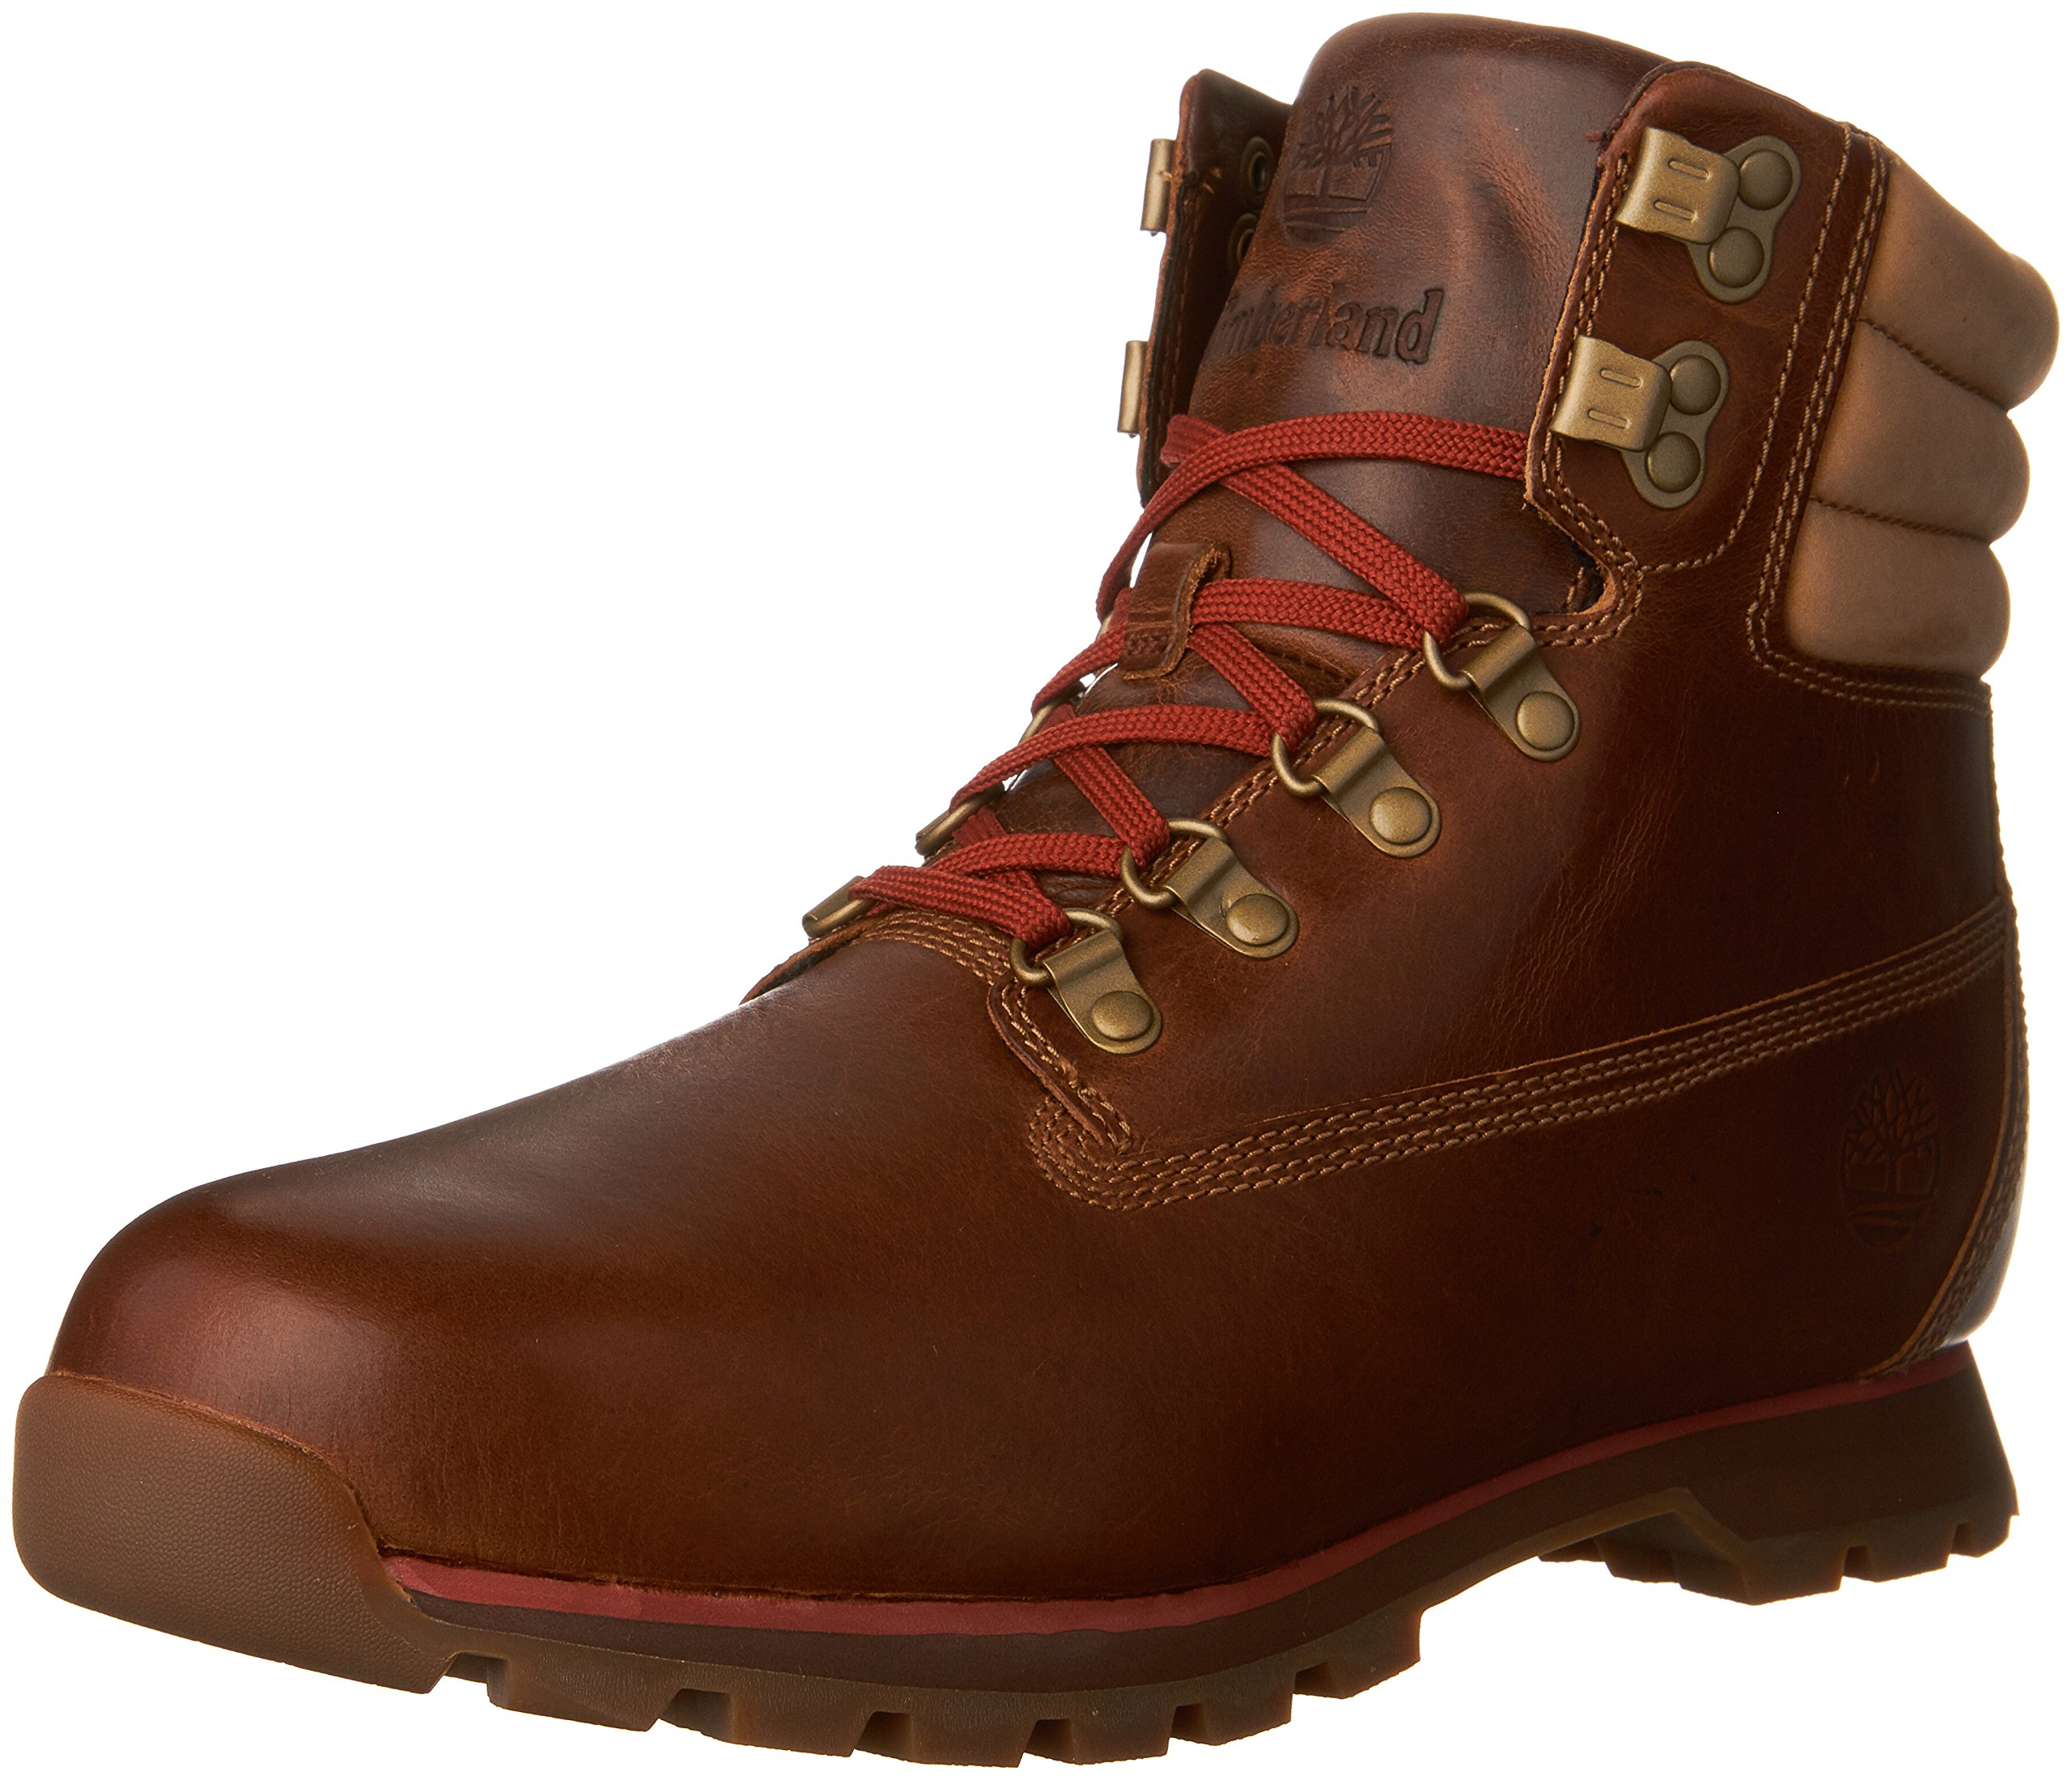 Timberland Men's Hutchington Hiker Boots, Doe, 10 M US